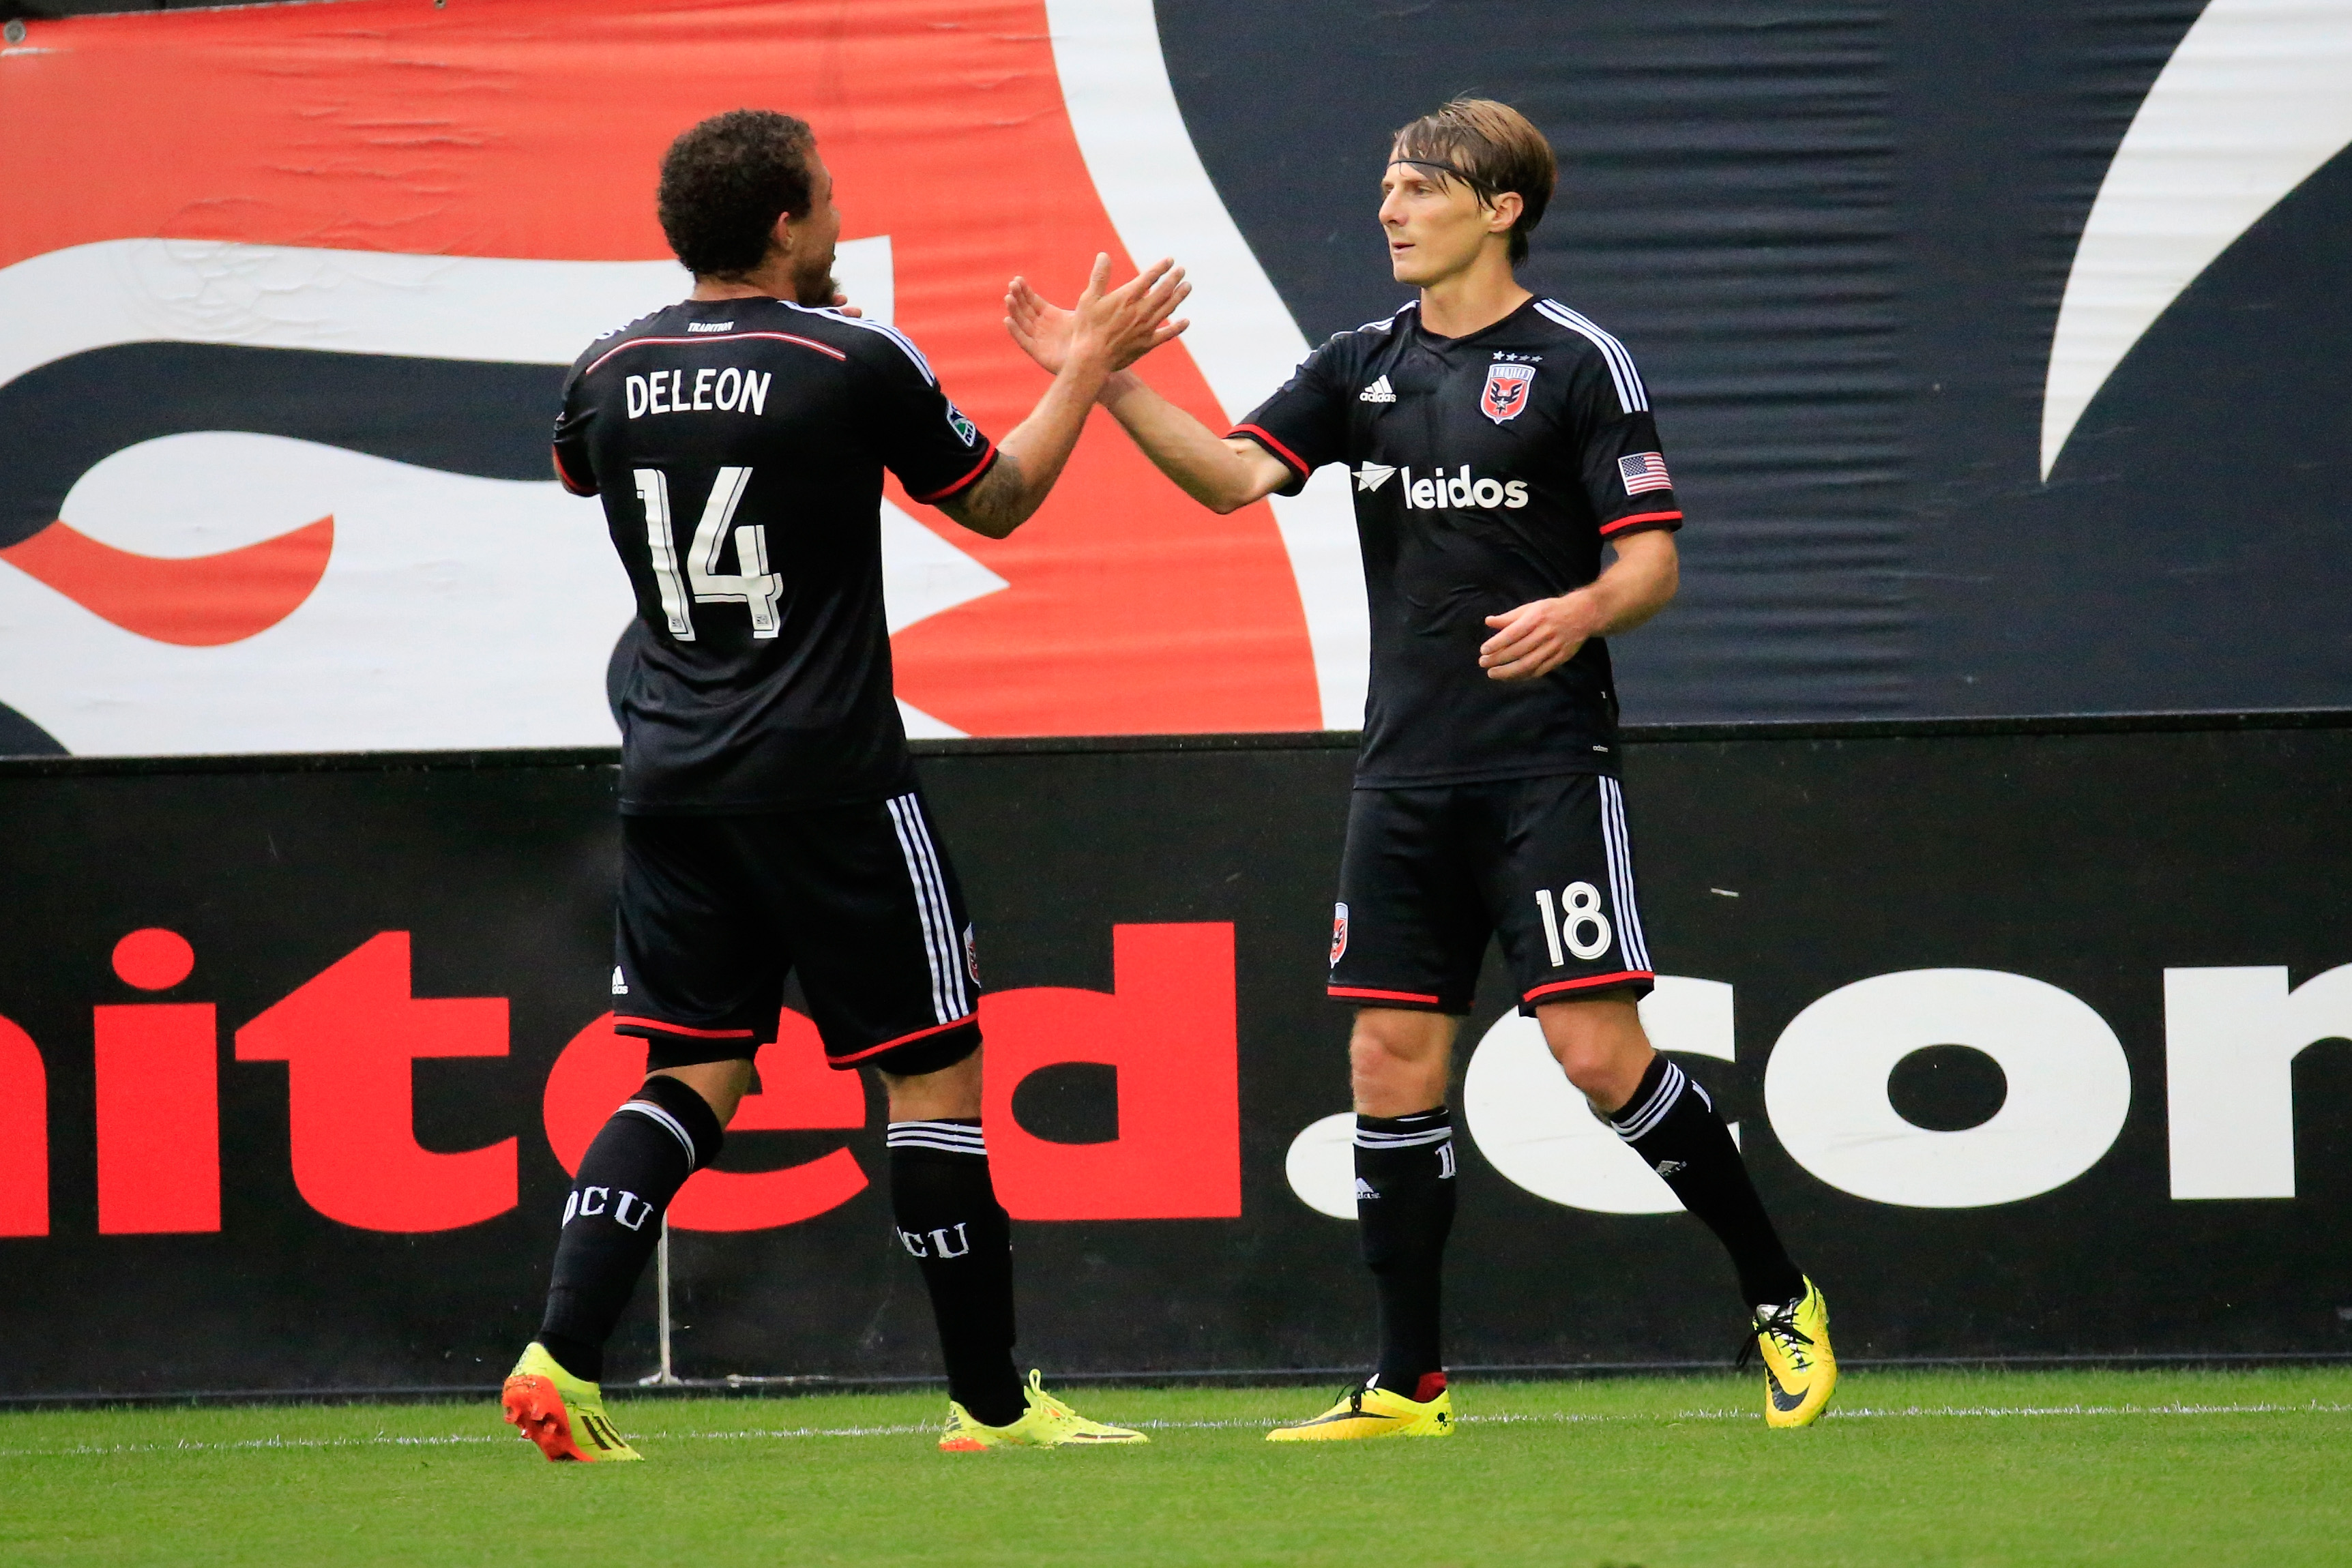 DC United need to figure out what Chris Rolfe is